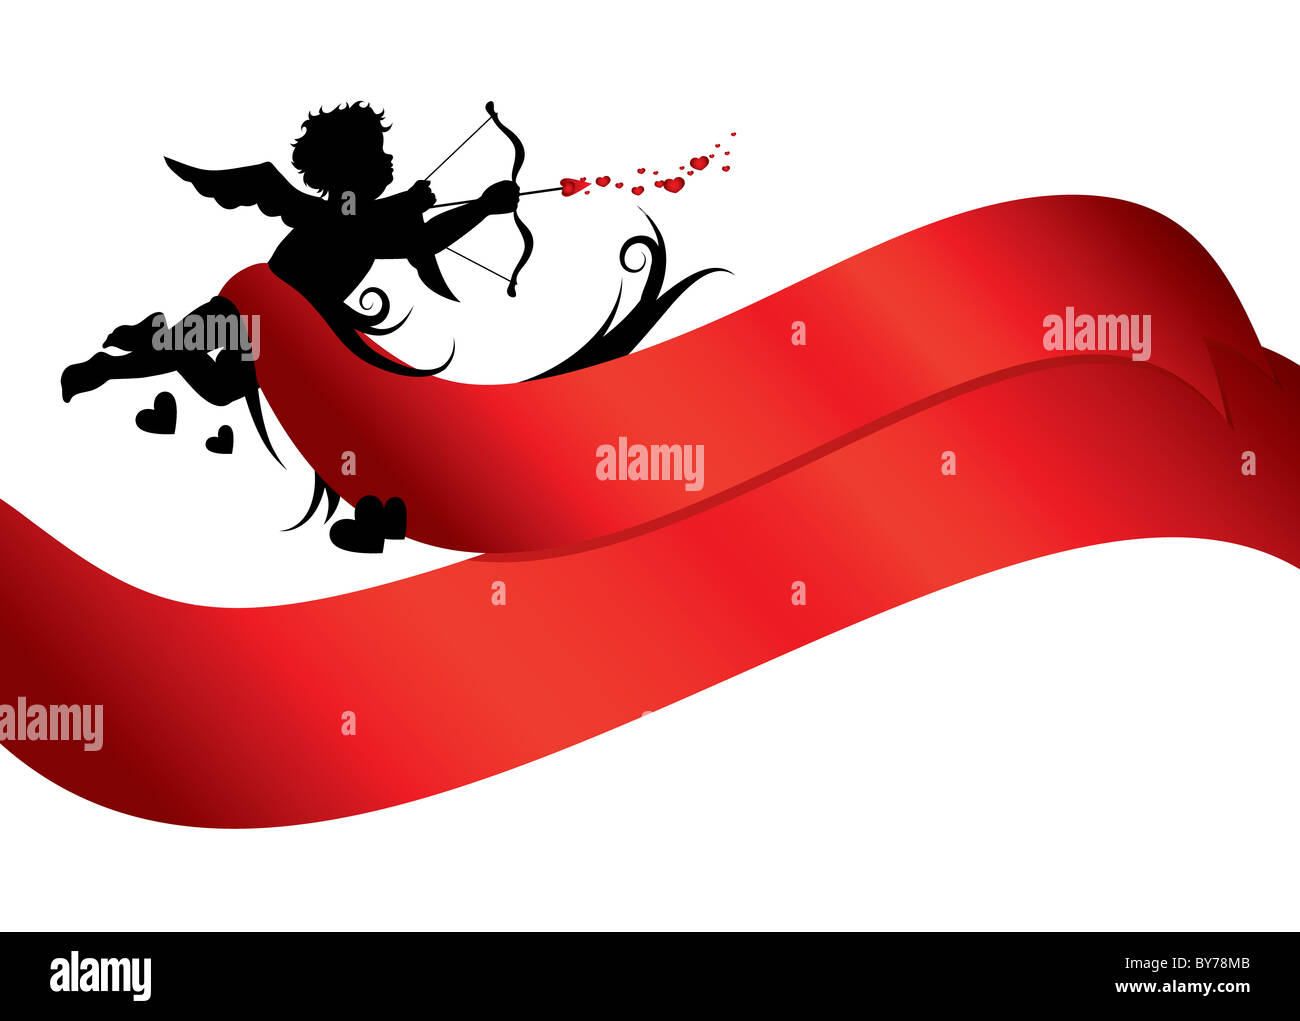 Cupid Stock Photos Cupid Stock Images Alamy